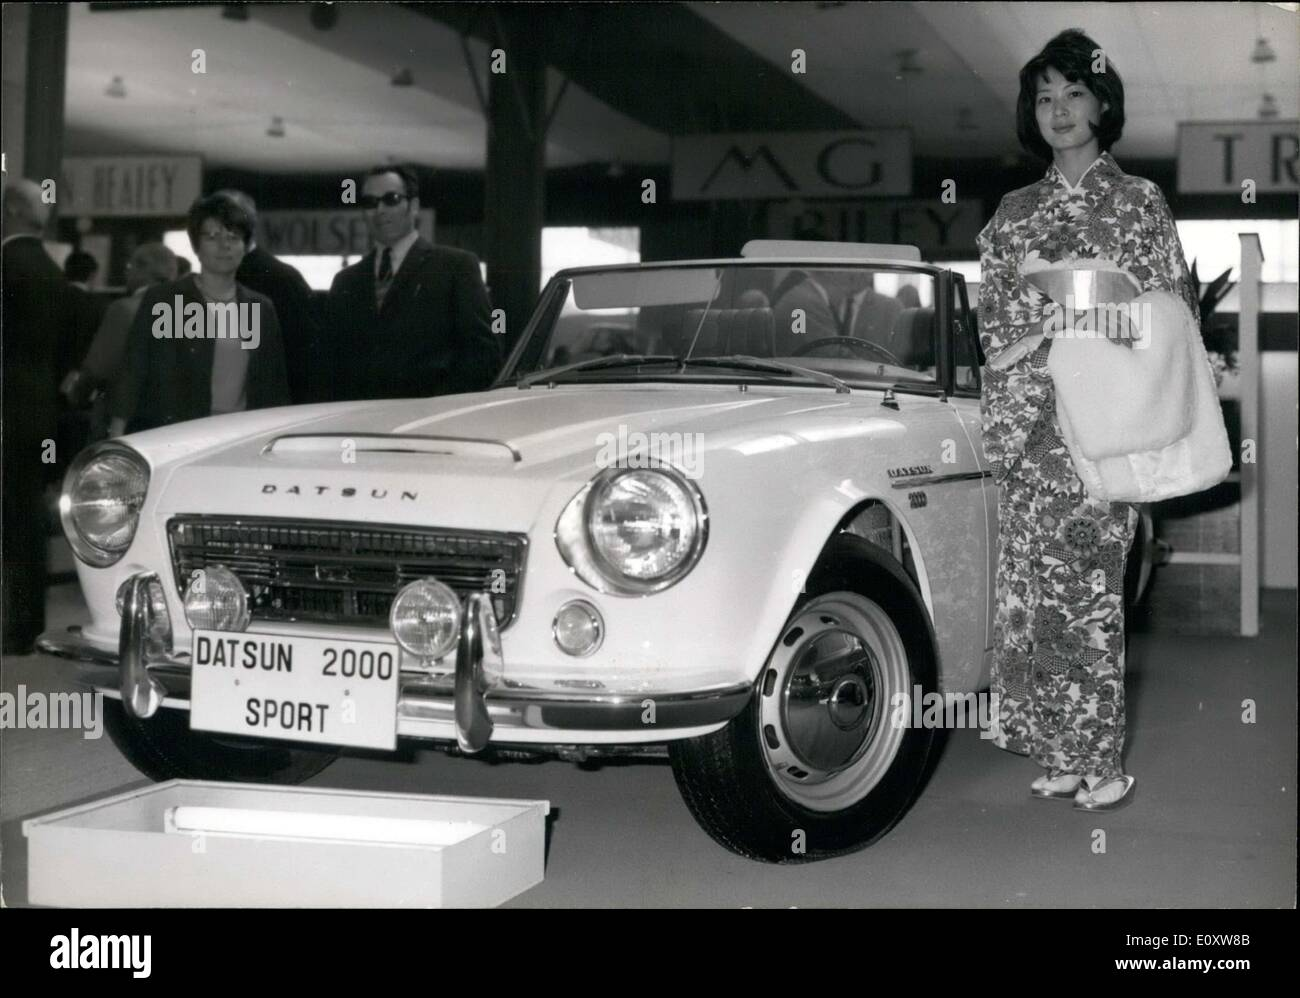 05 octobre 1967 nouvelle voiture japonaise au salon de l 39 auto datsun sport 2000 banque d. Black Bedroom Furniture Sets. Home Design Ideas